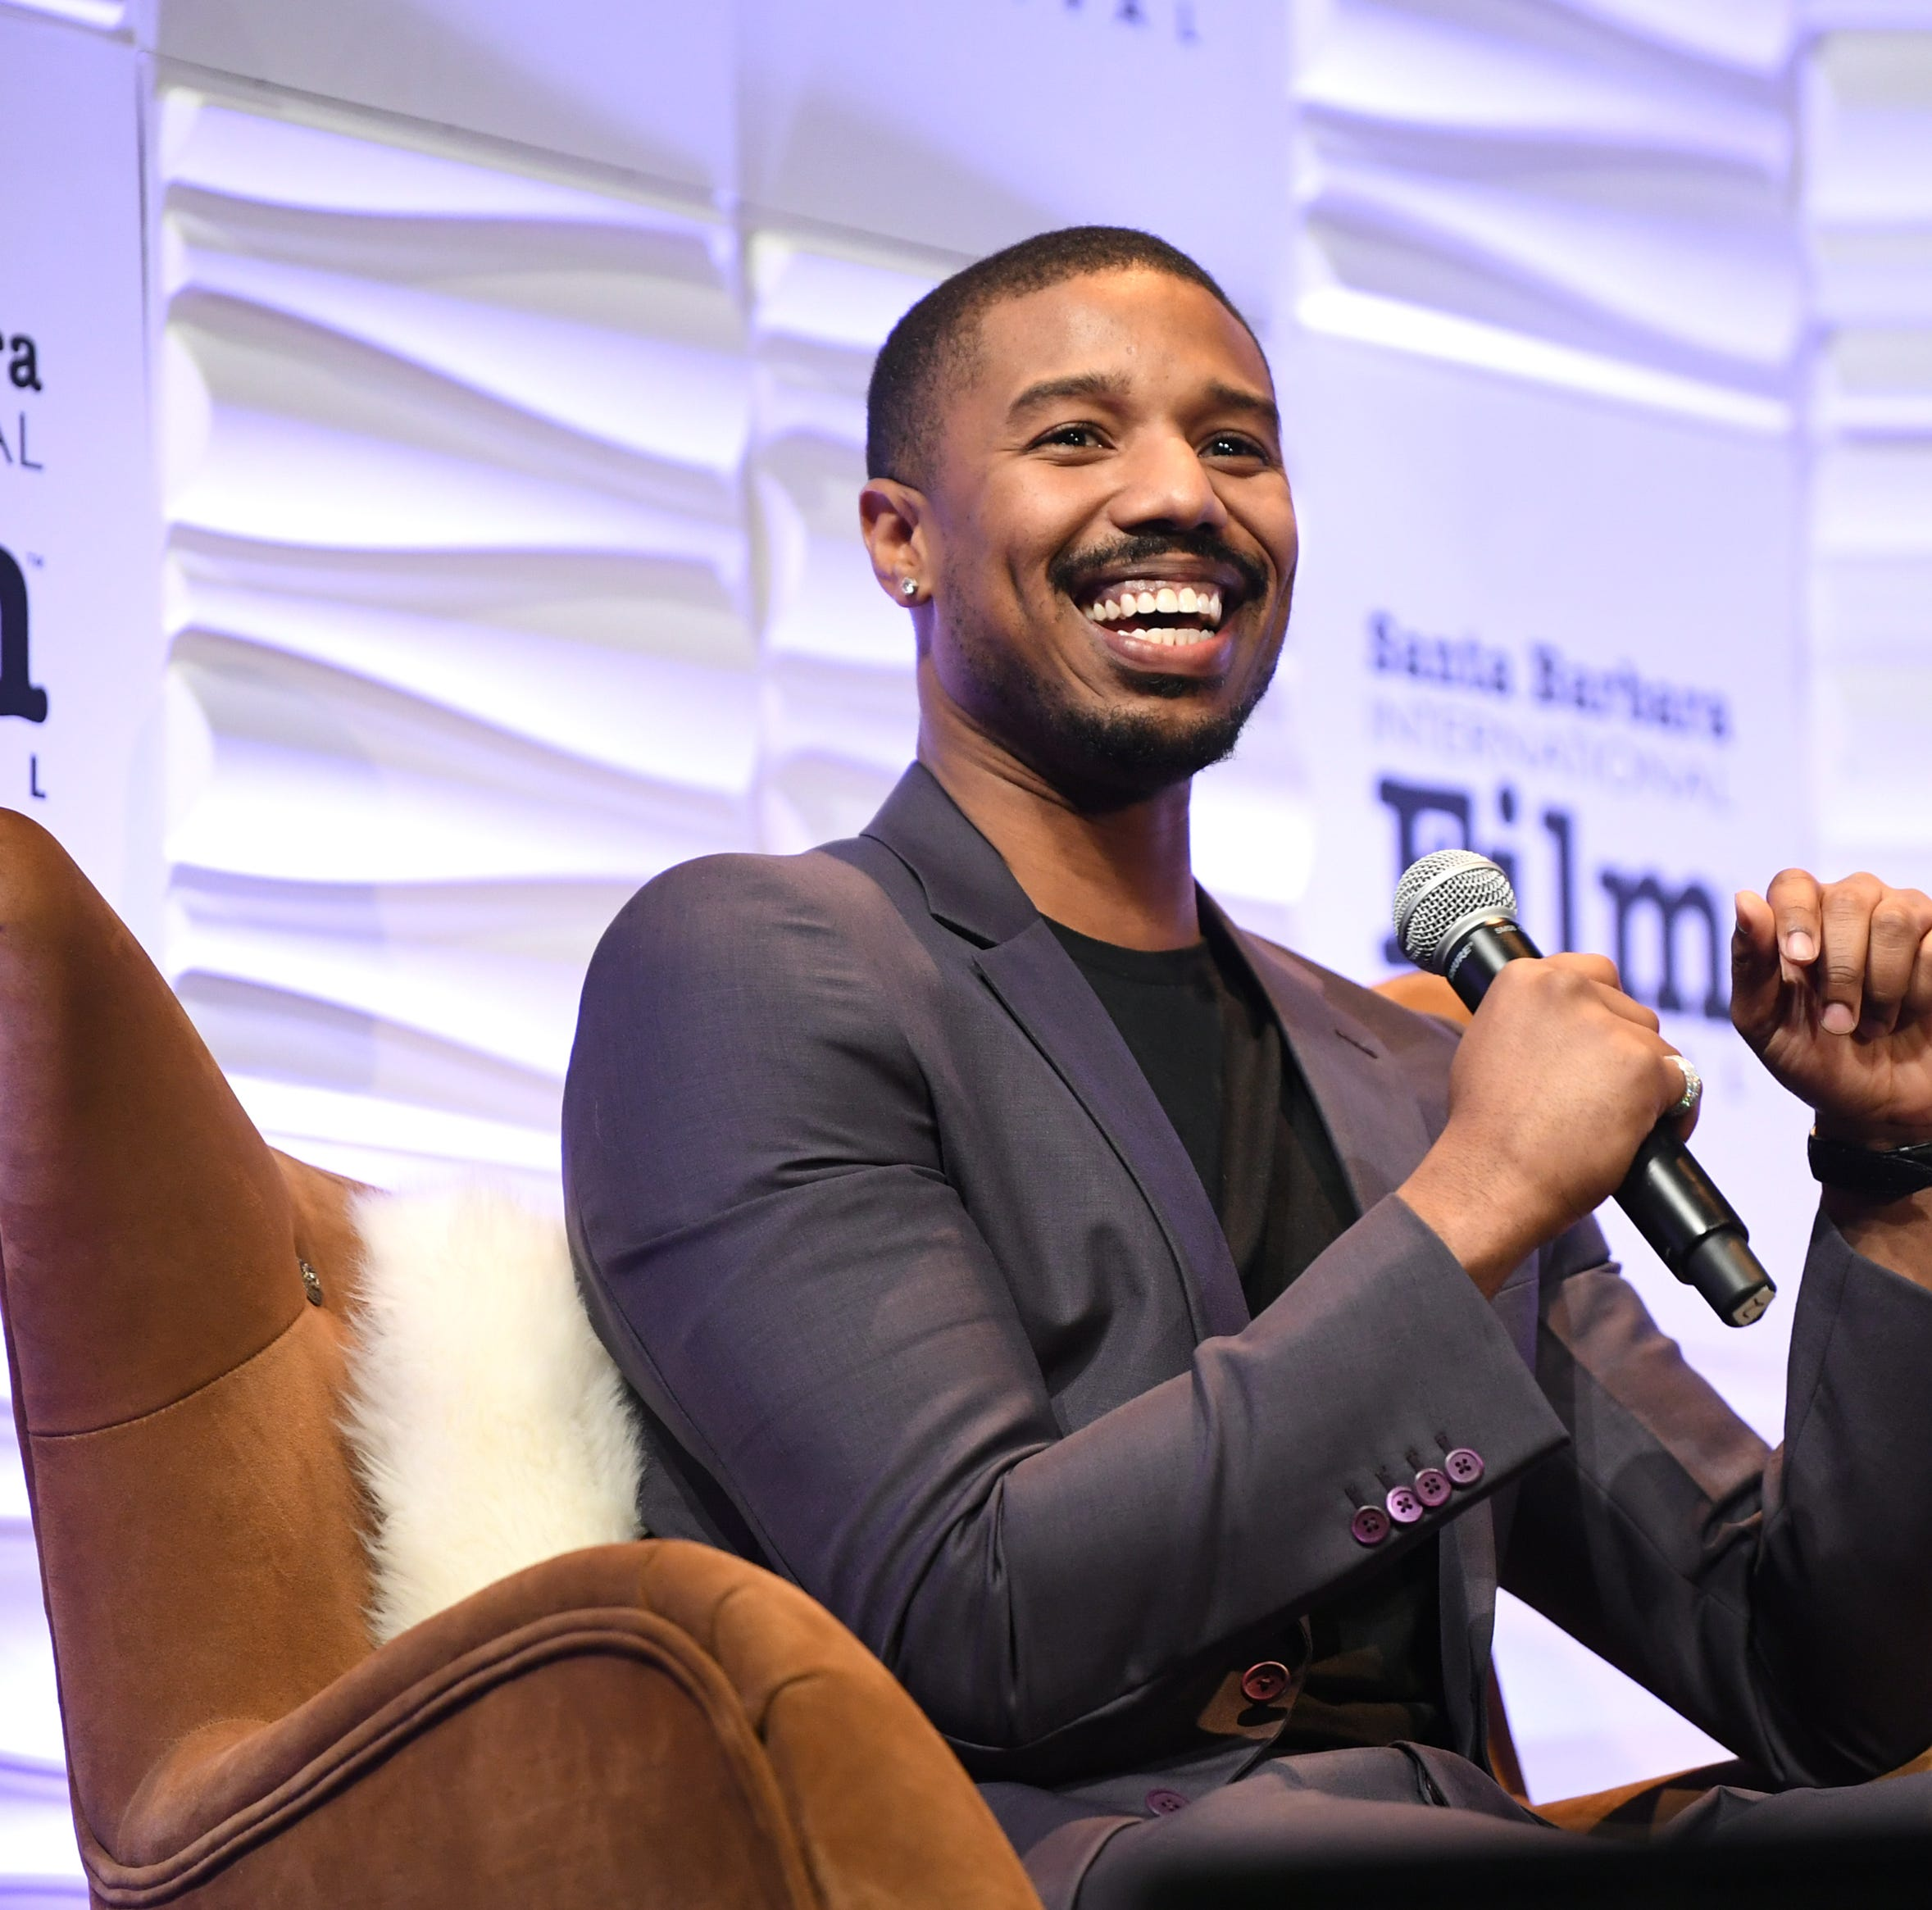 Michael B. Jordan, Ryan Coogler take the stage for Day 2 of the MBK Rising! conference in California